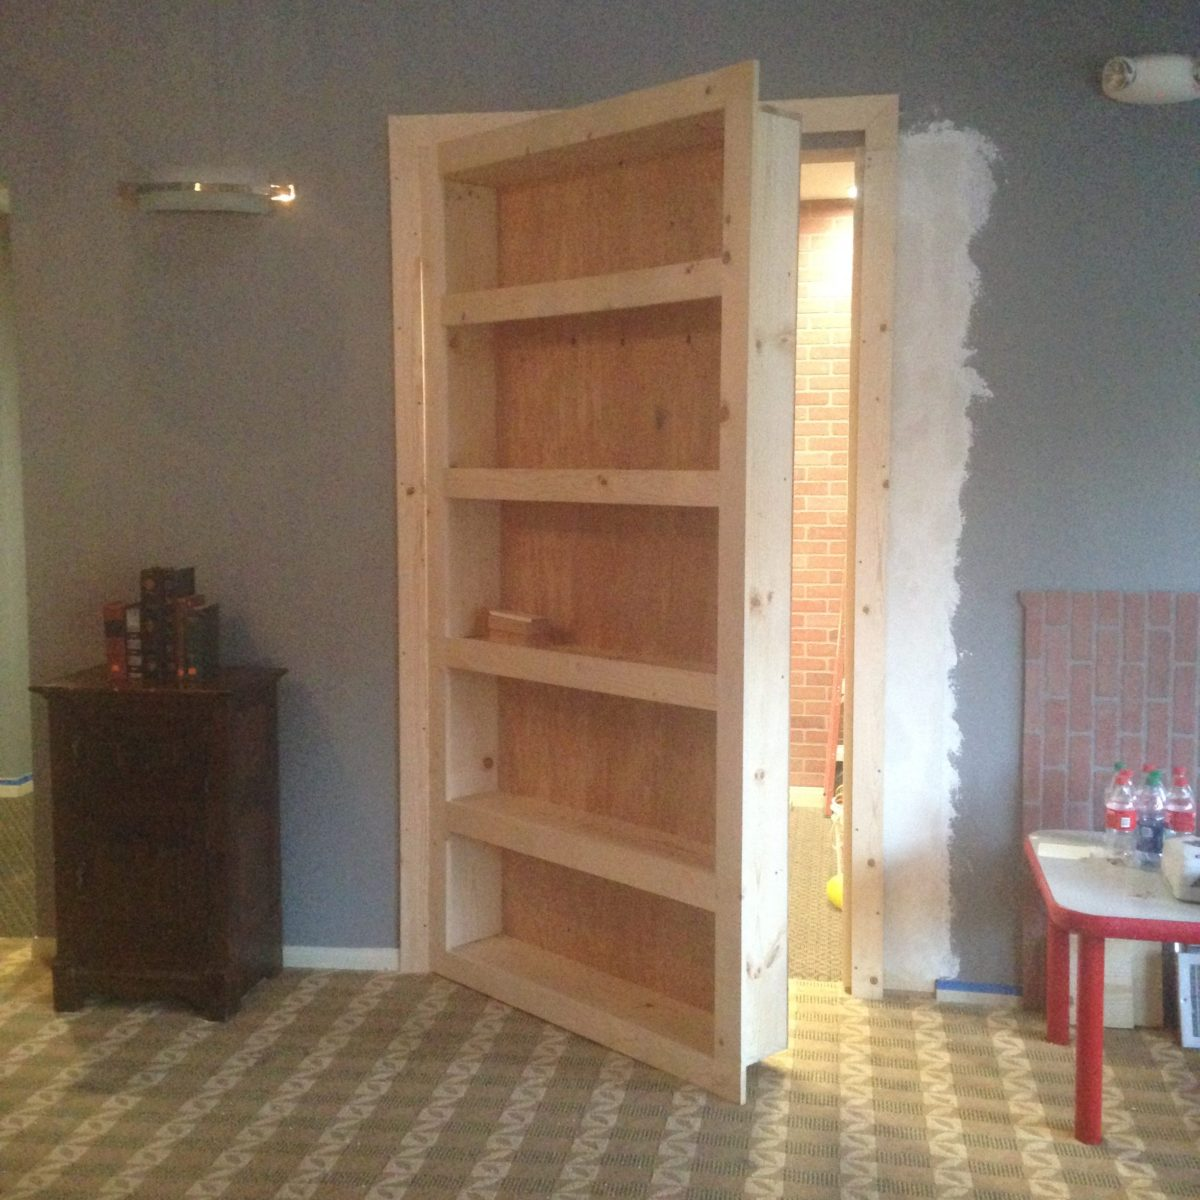 artist brandon roth builds a hidden room behind a bookcase